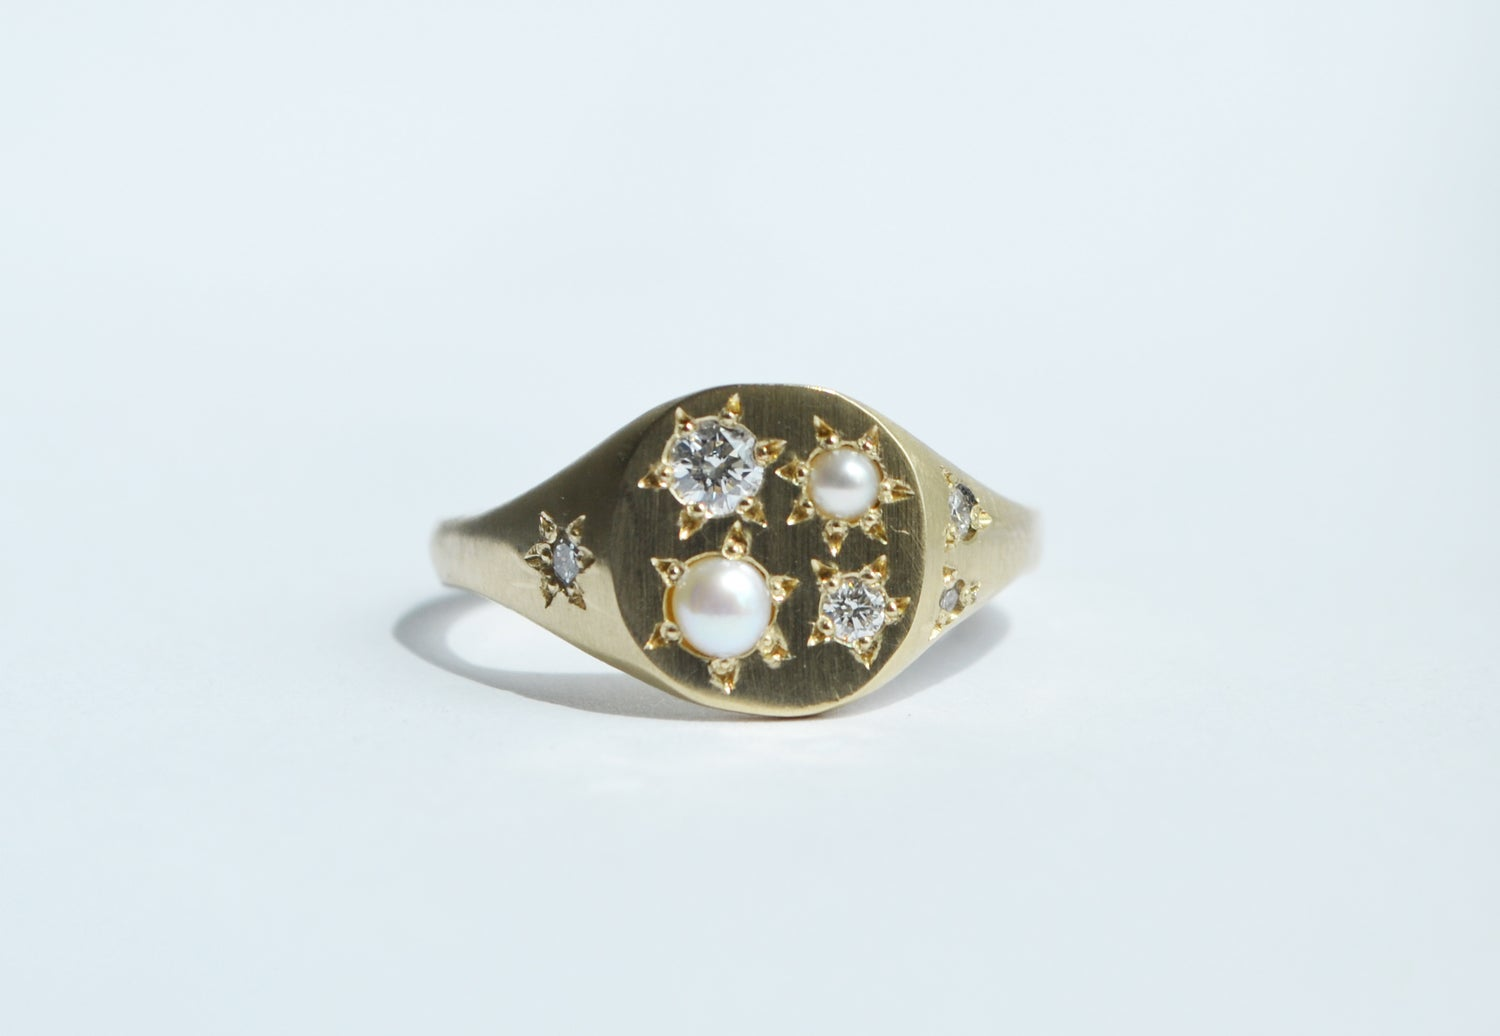 Image of Diamonds and Pearls ring